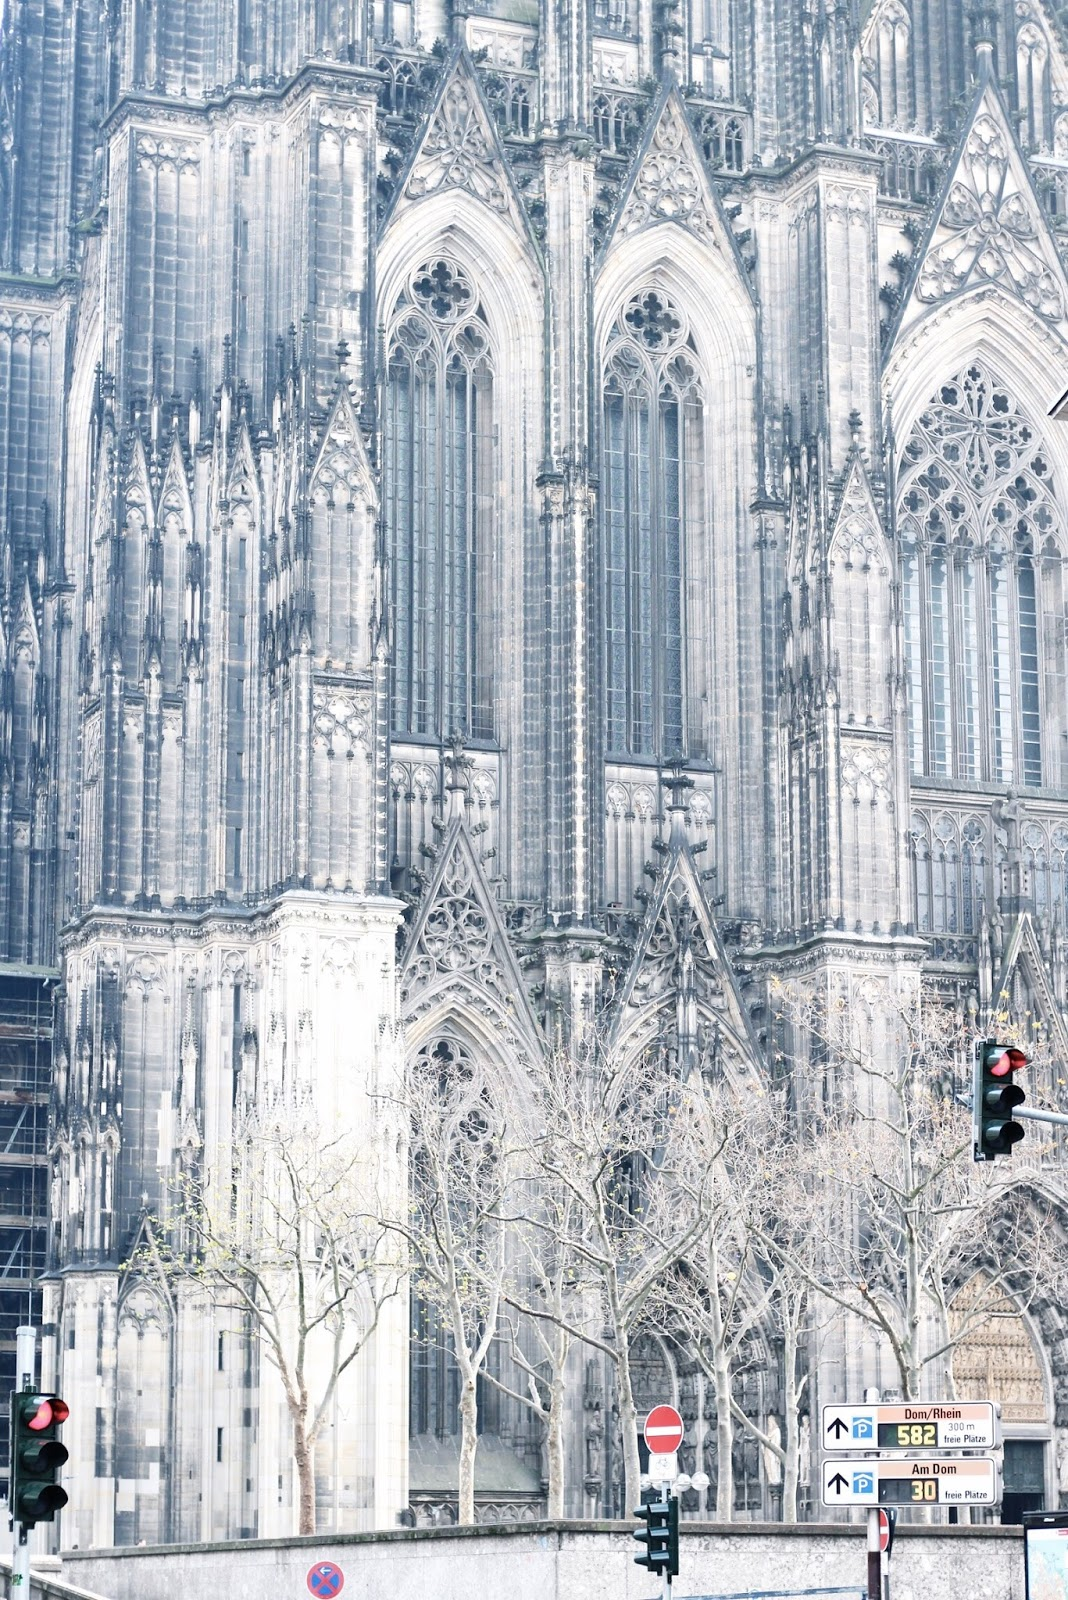 Kölner Dom Cologne Cathedral in winter